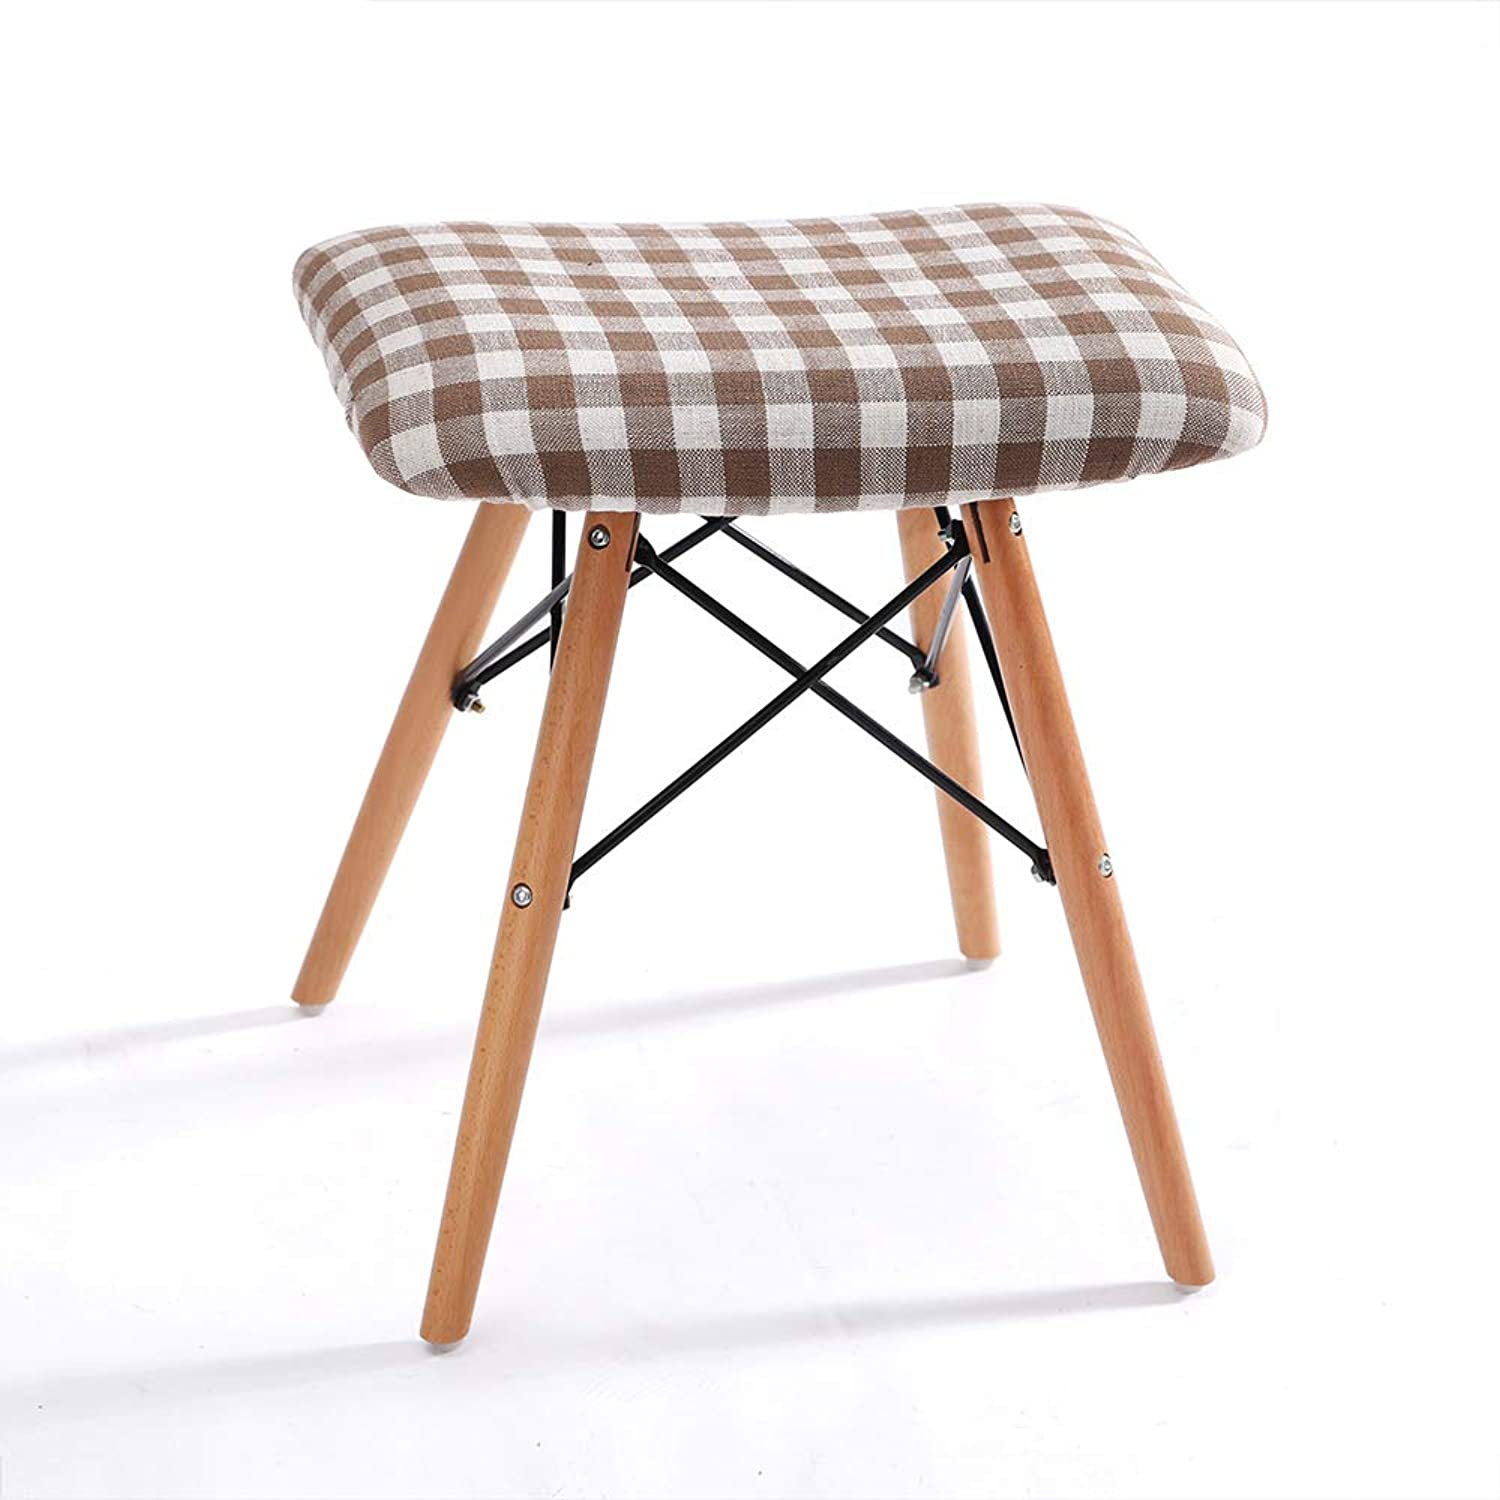 LifeX Office Luxury Solid Wood Stool Pouffe Makeup Stool Fabric Dining Stool Home Square Footstool Coffee Table Chair Study Room Computer Seat shoes Stable Structure Bench (color   Stripe B)